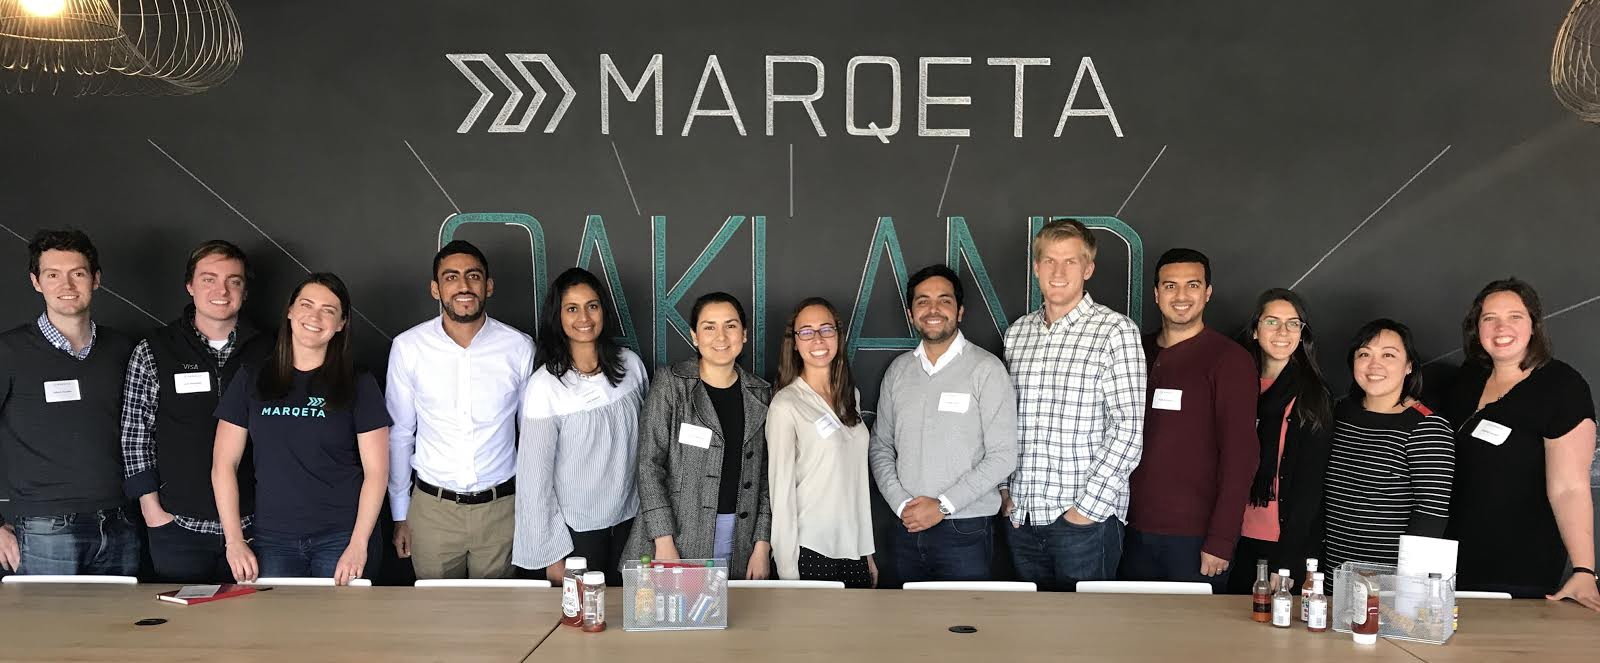 Marqeta Careers Pique Interest for Berkeley-Haas MBAs interested in  Payments Innovation | by Bosun Adebaki | Haas FinTech Club | Medium